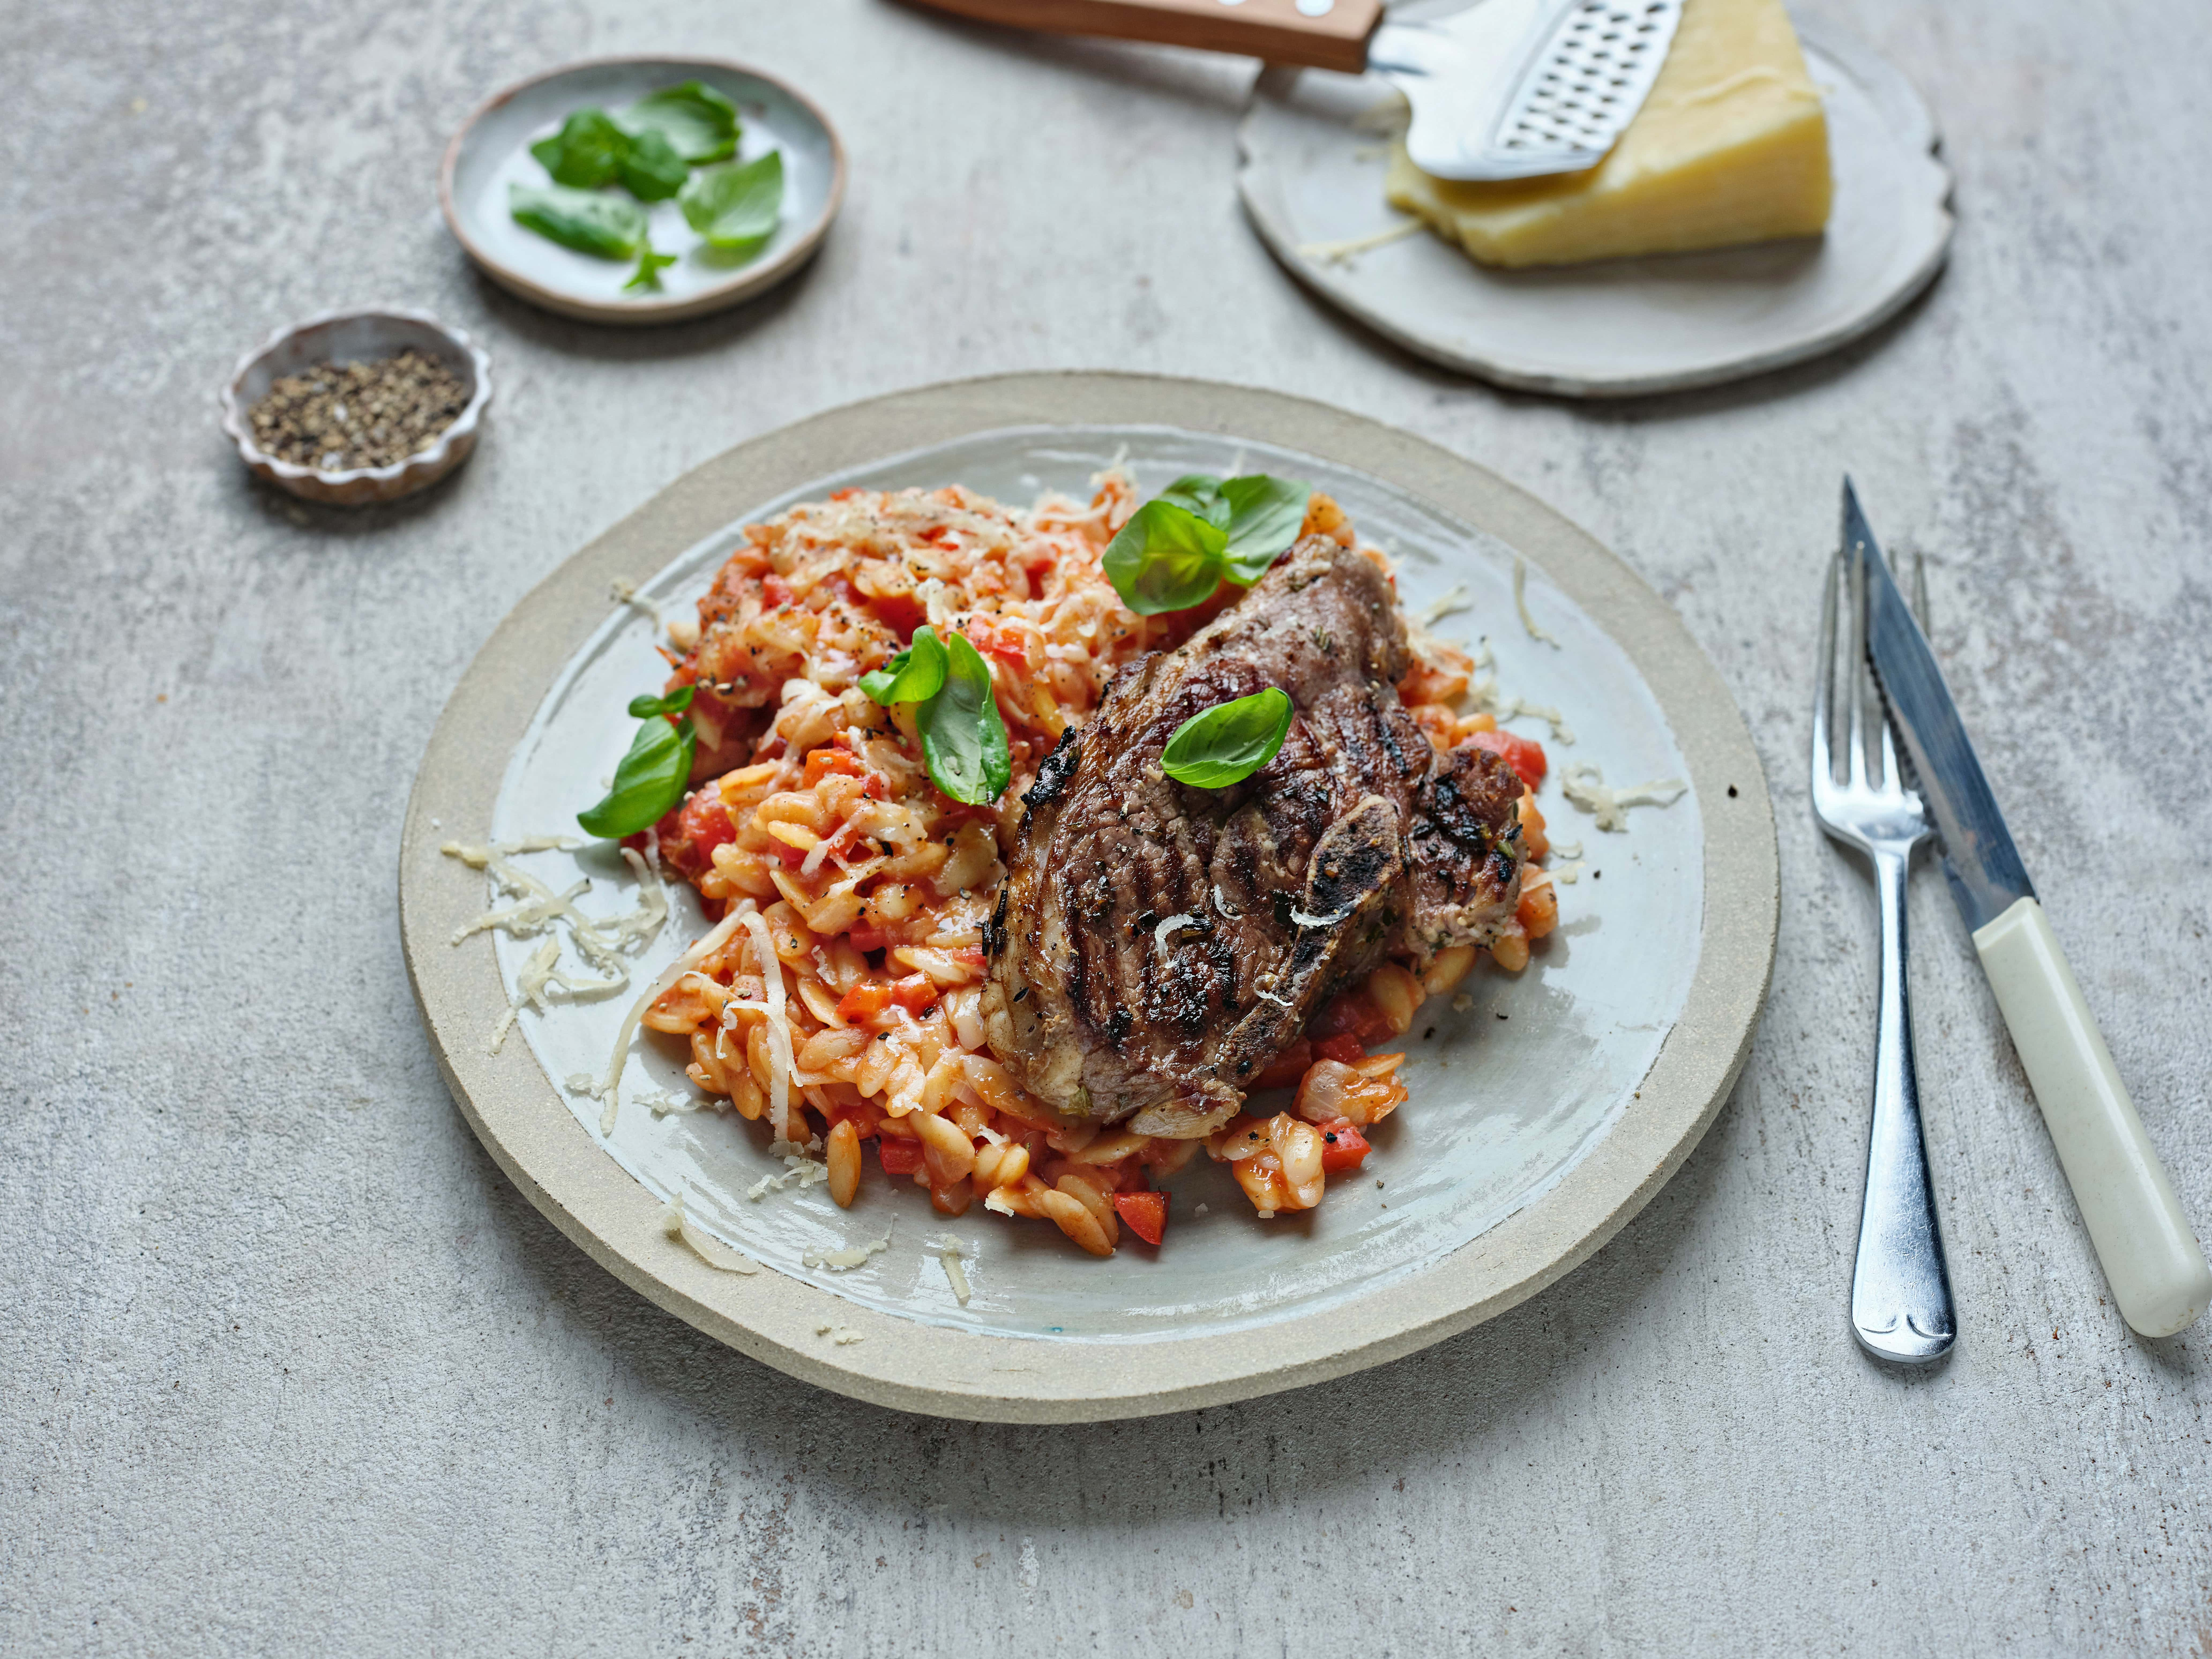 Lamb Steak with Orzo